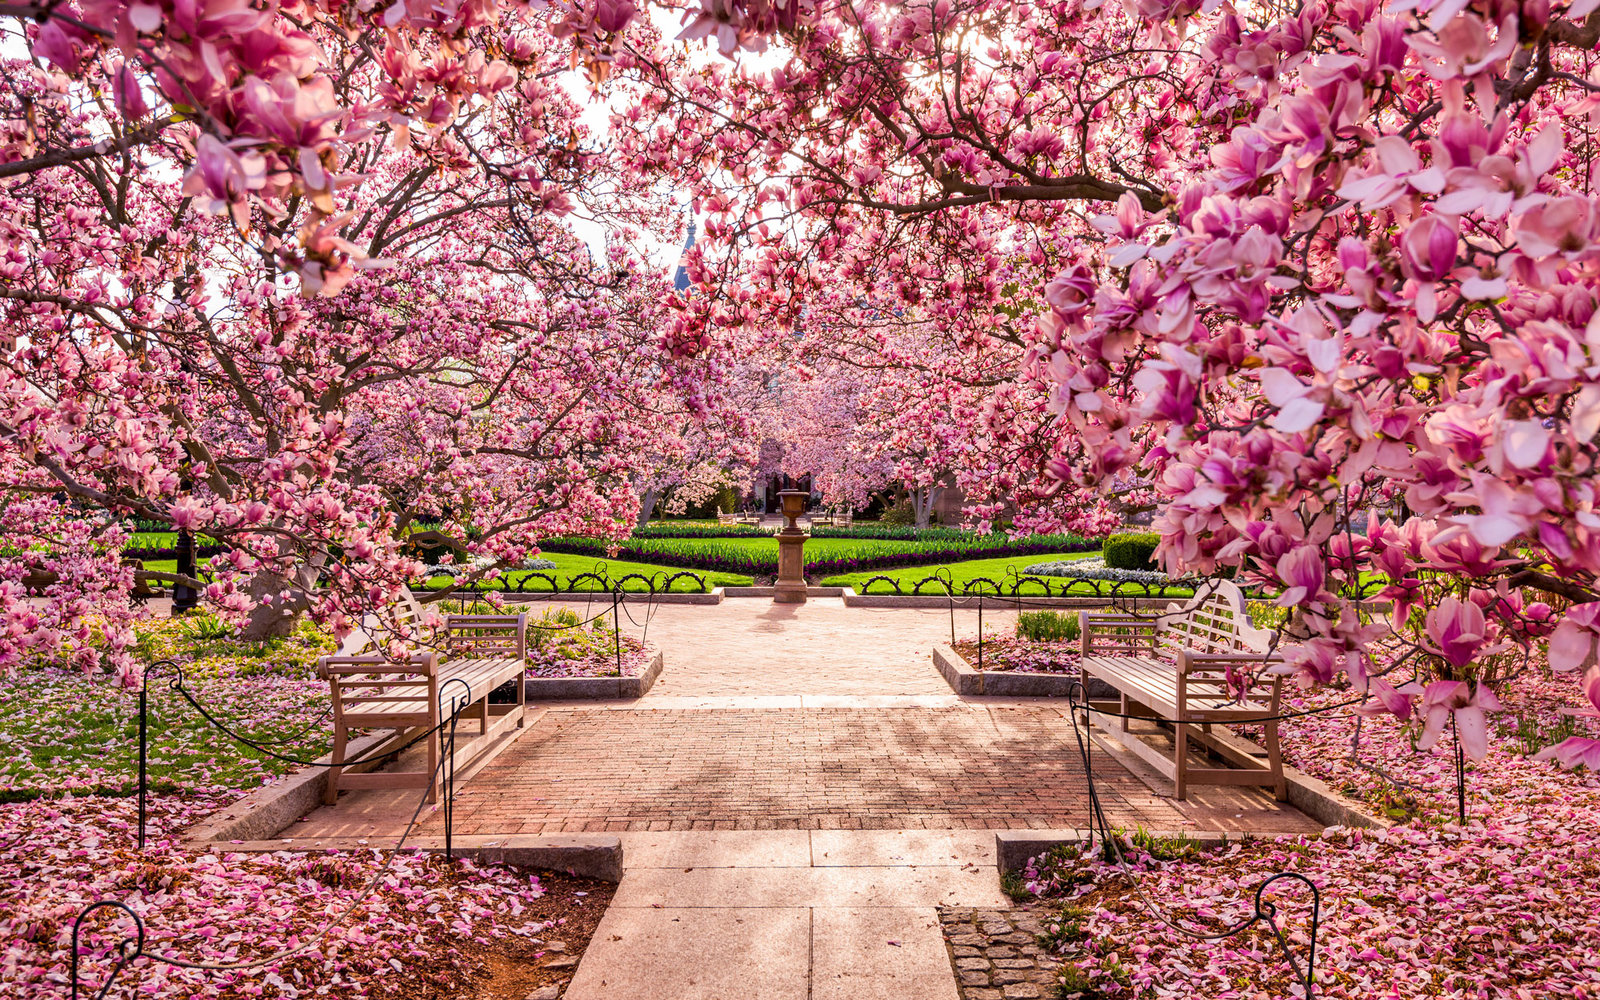 When Do Cherry Blossoms Bloom In Washington D C